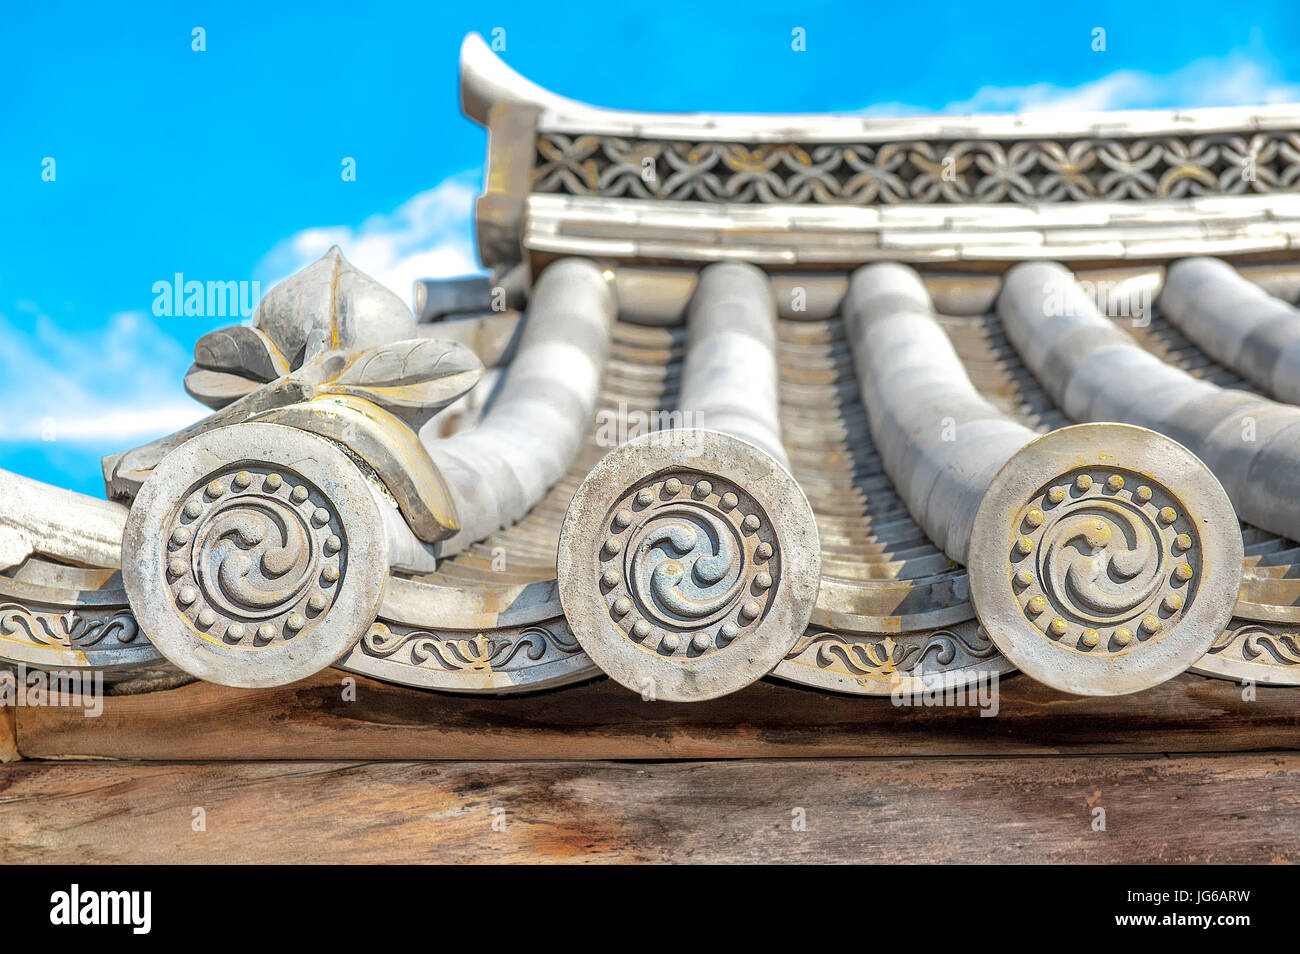 Ornate design end pieces of roof tiles which are for protective and decorative purposes, also known as 'WADANG' Stock Photo